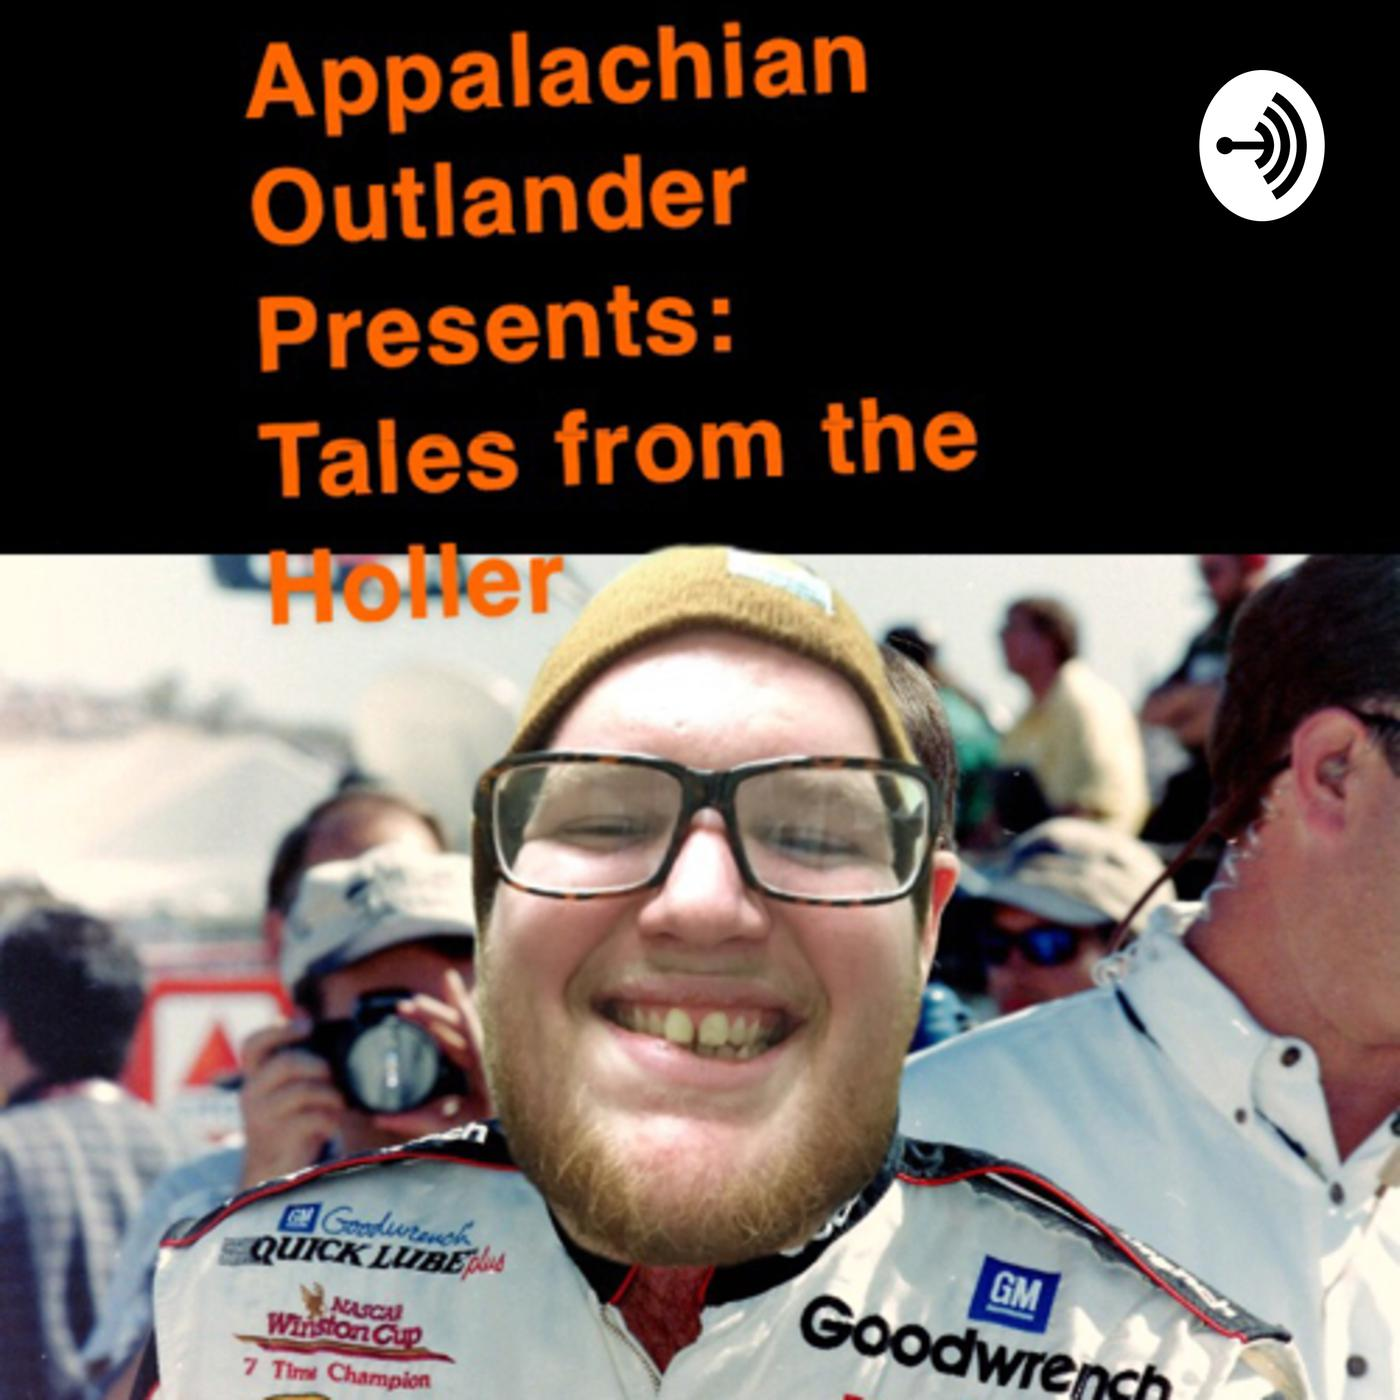 Natty The Fatty the appalachian outlander here! pack a fatty don't drink